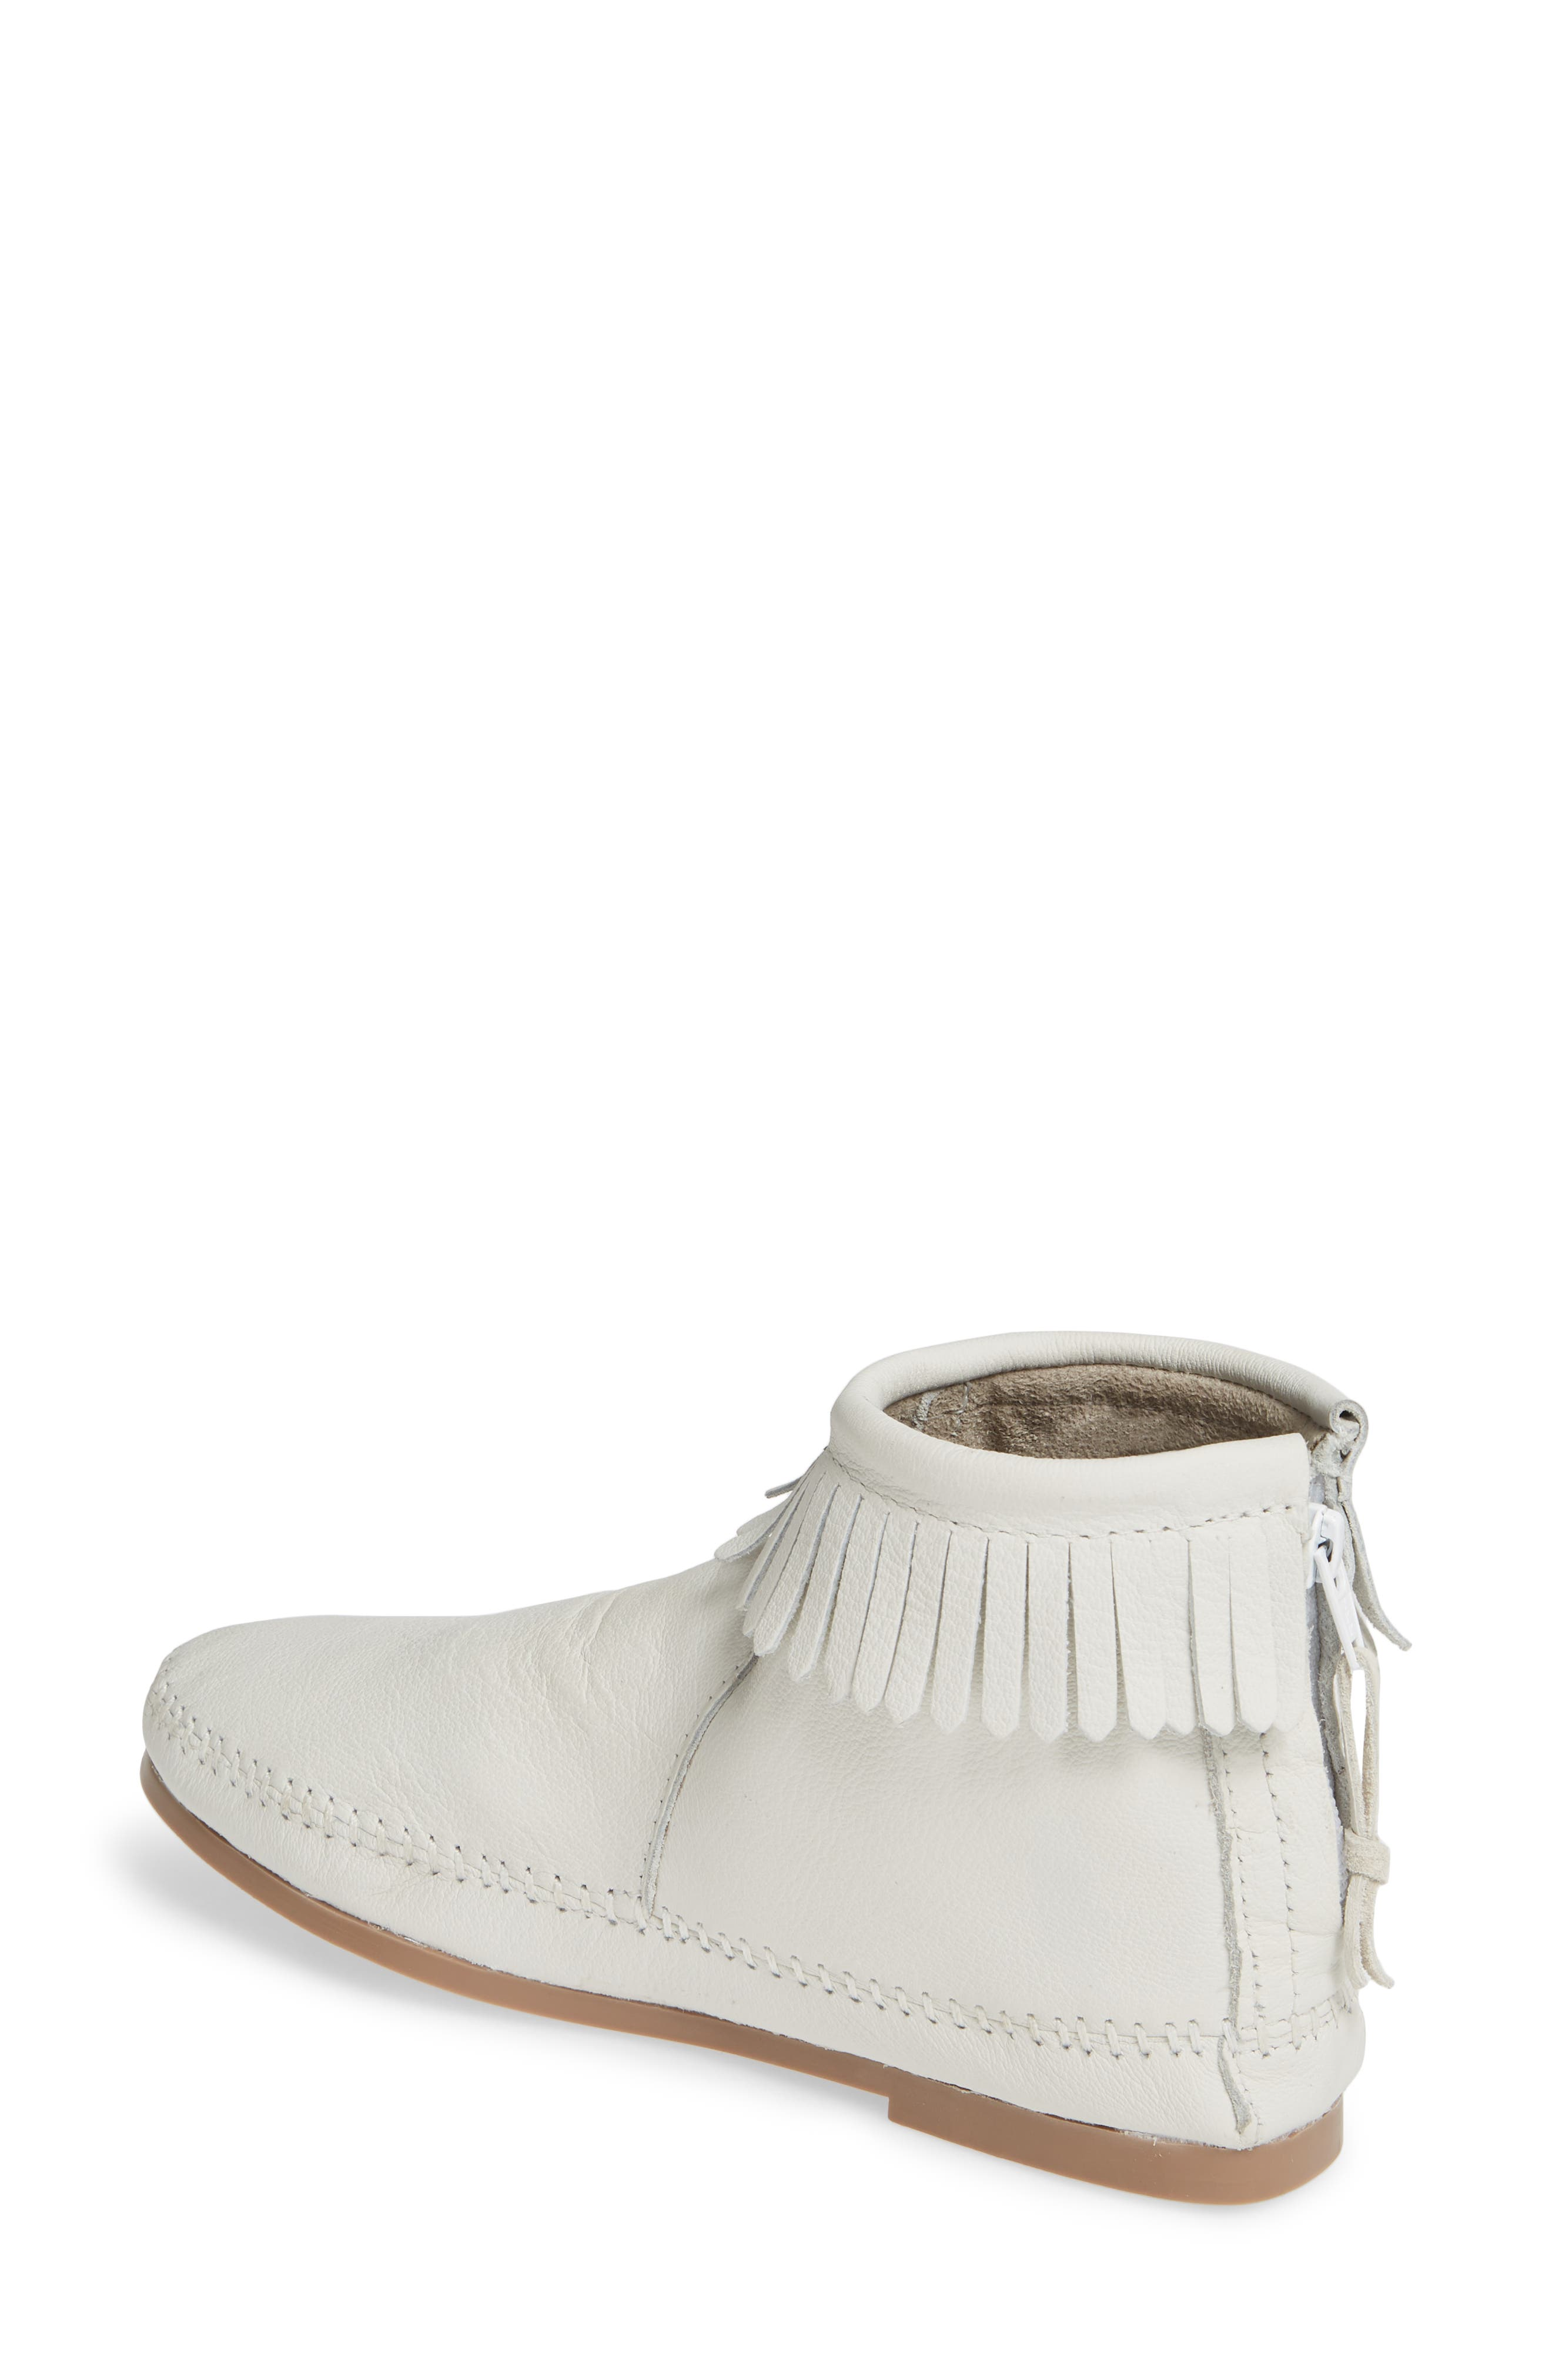 MINNETONKA, x Lottie Moss Lauryn Fringe Bootie, Alternate thumbnail 2, color, WHITE LEATHER